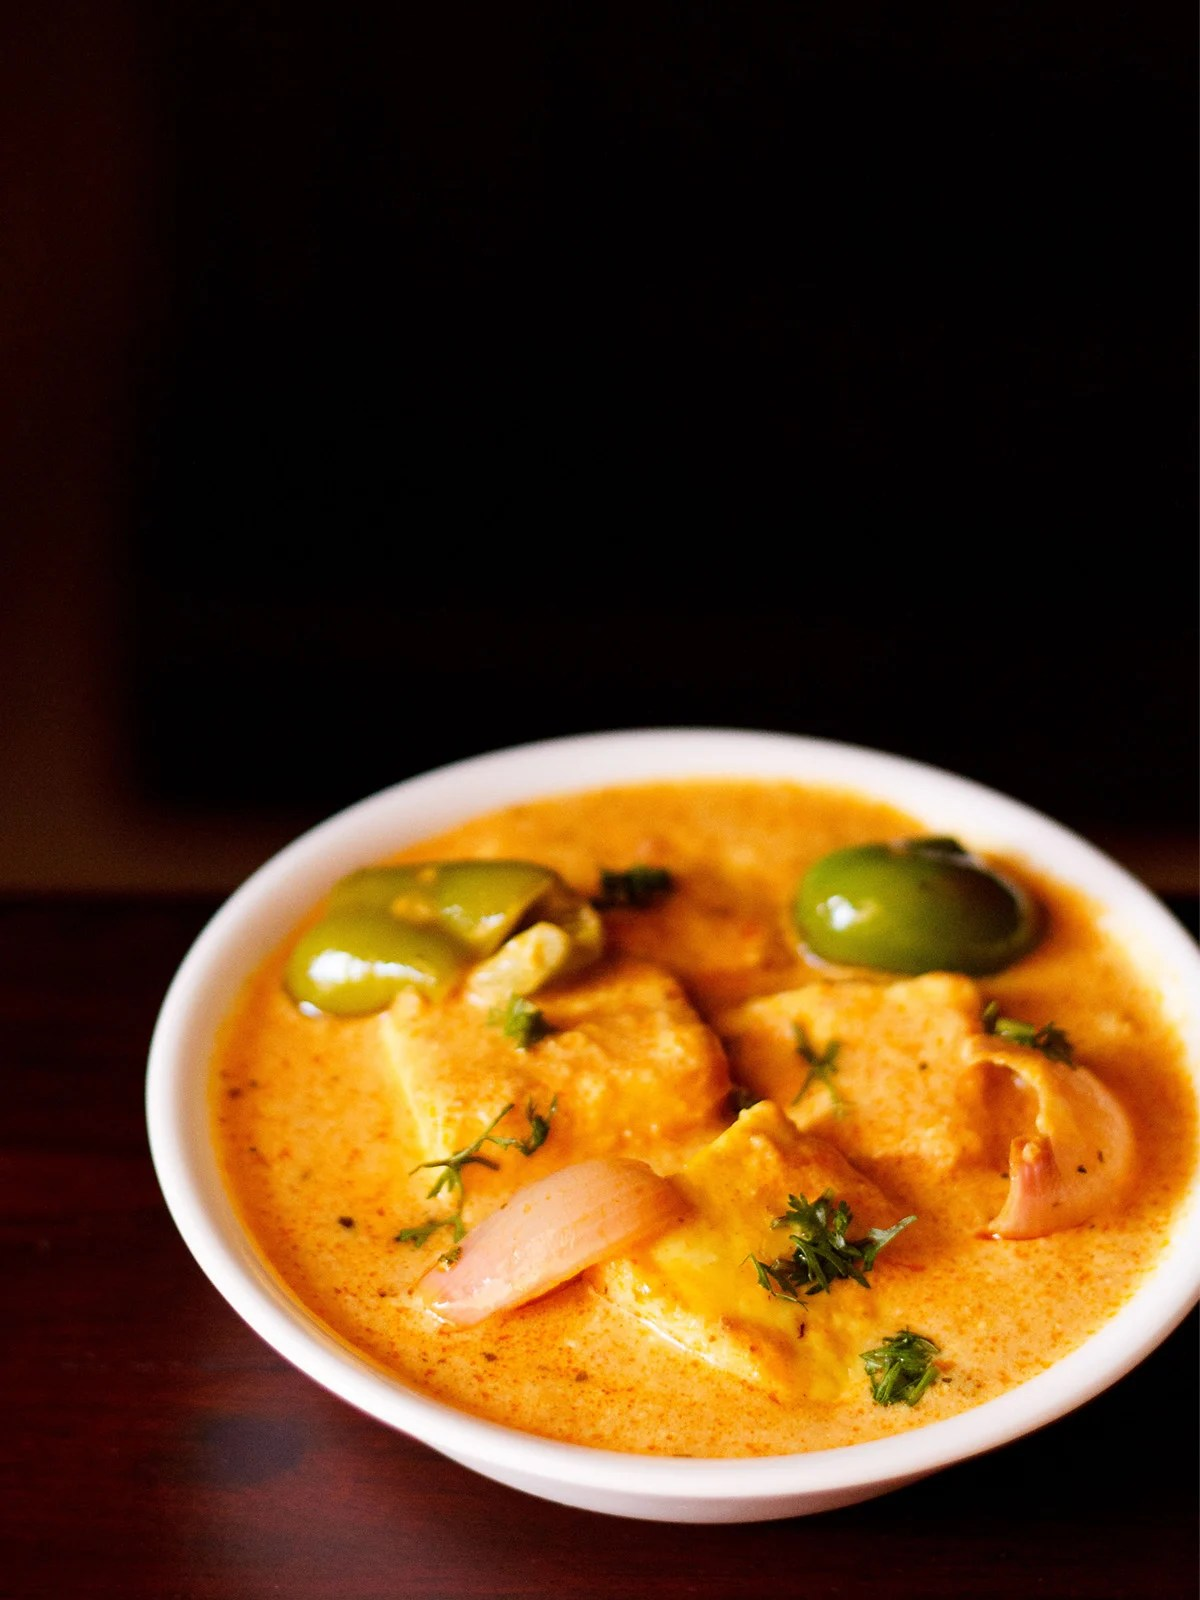 paneer tikka masala served in a white bowl garnished with some coriander leaves on a dark mahogany table